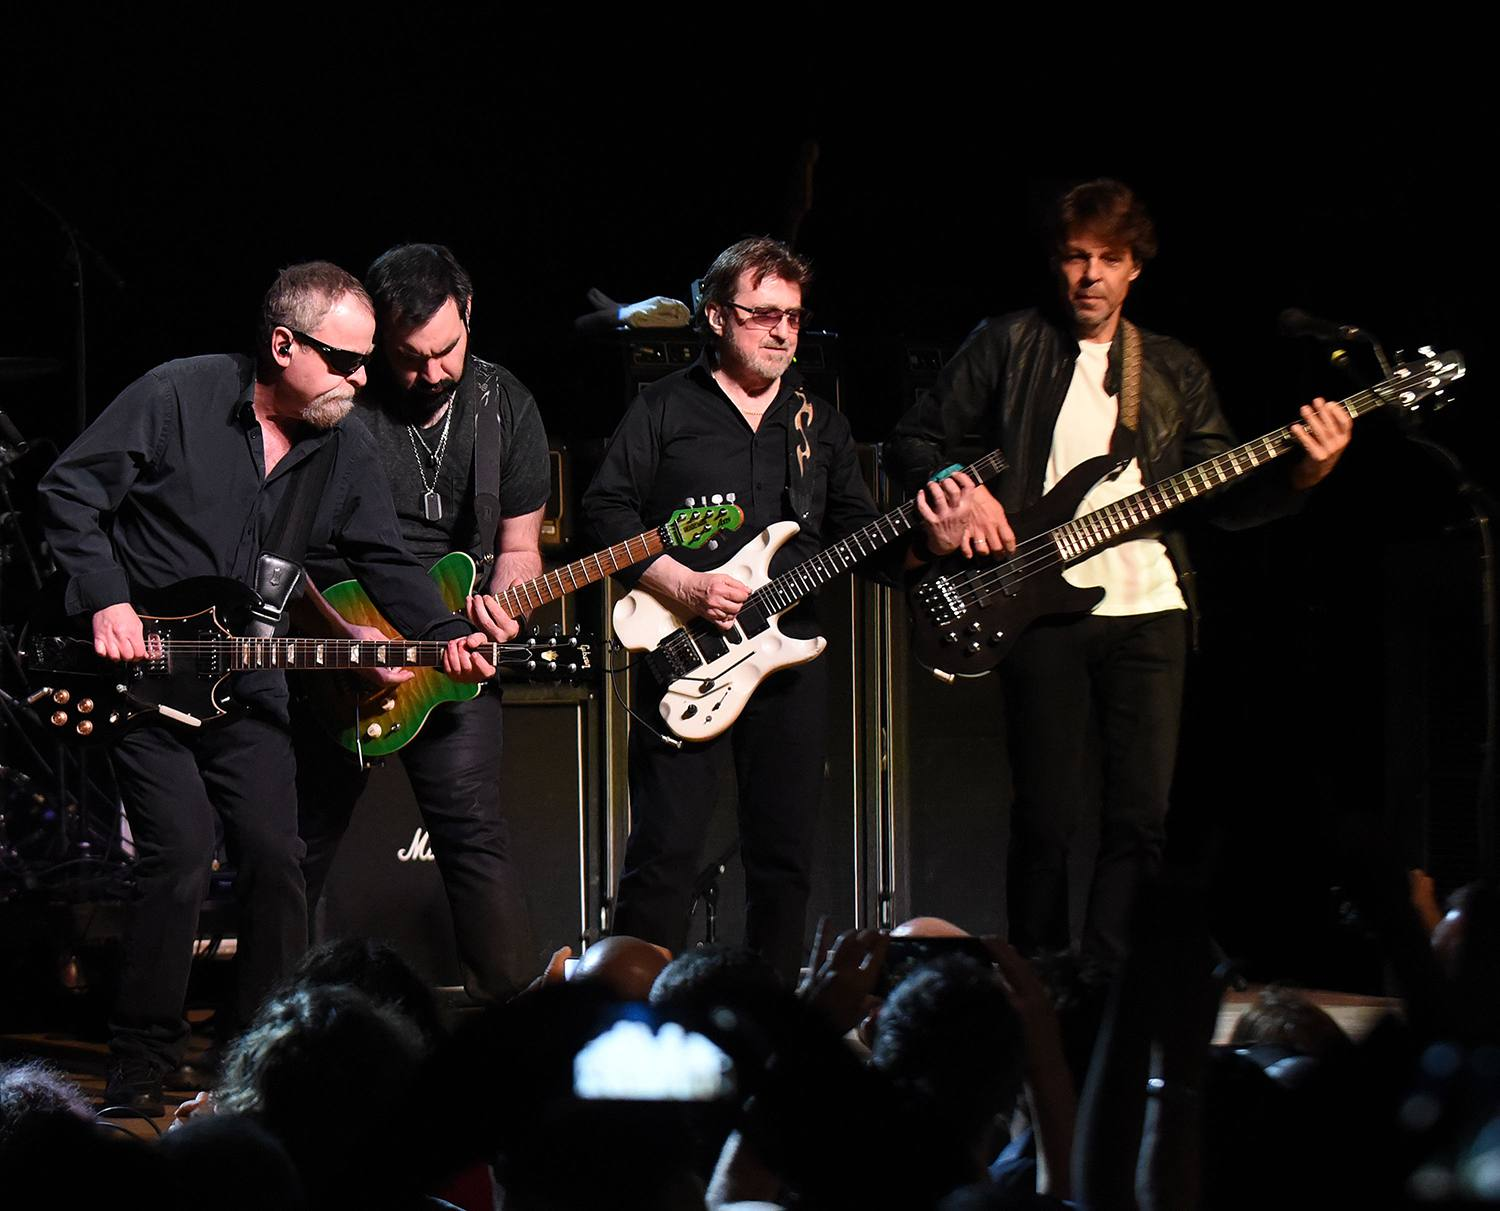 Eric Bloom, Richie Castellano, Donald 'Buck Dharma' Roeser, and Kasim Sulton of Blue Oyster Cult perform